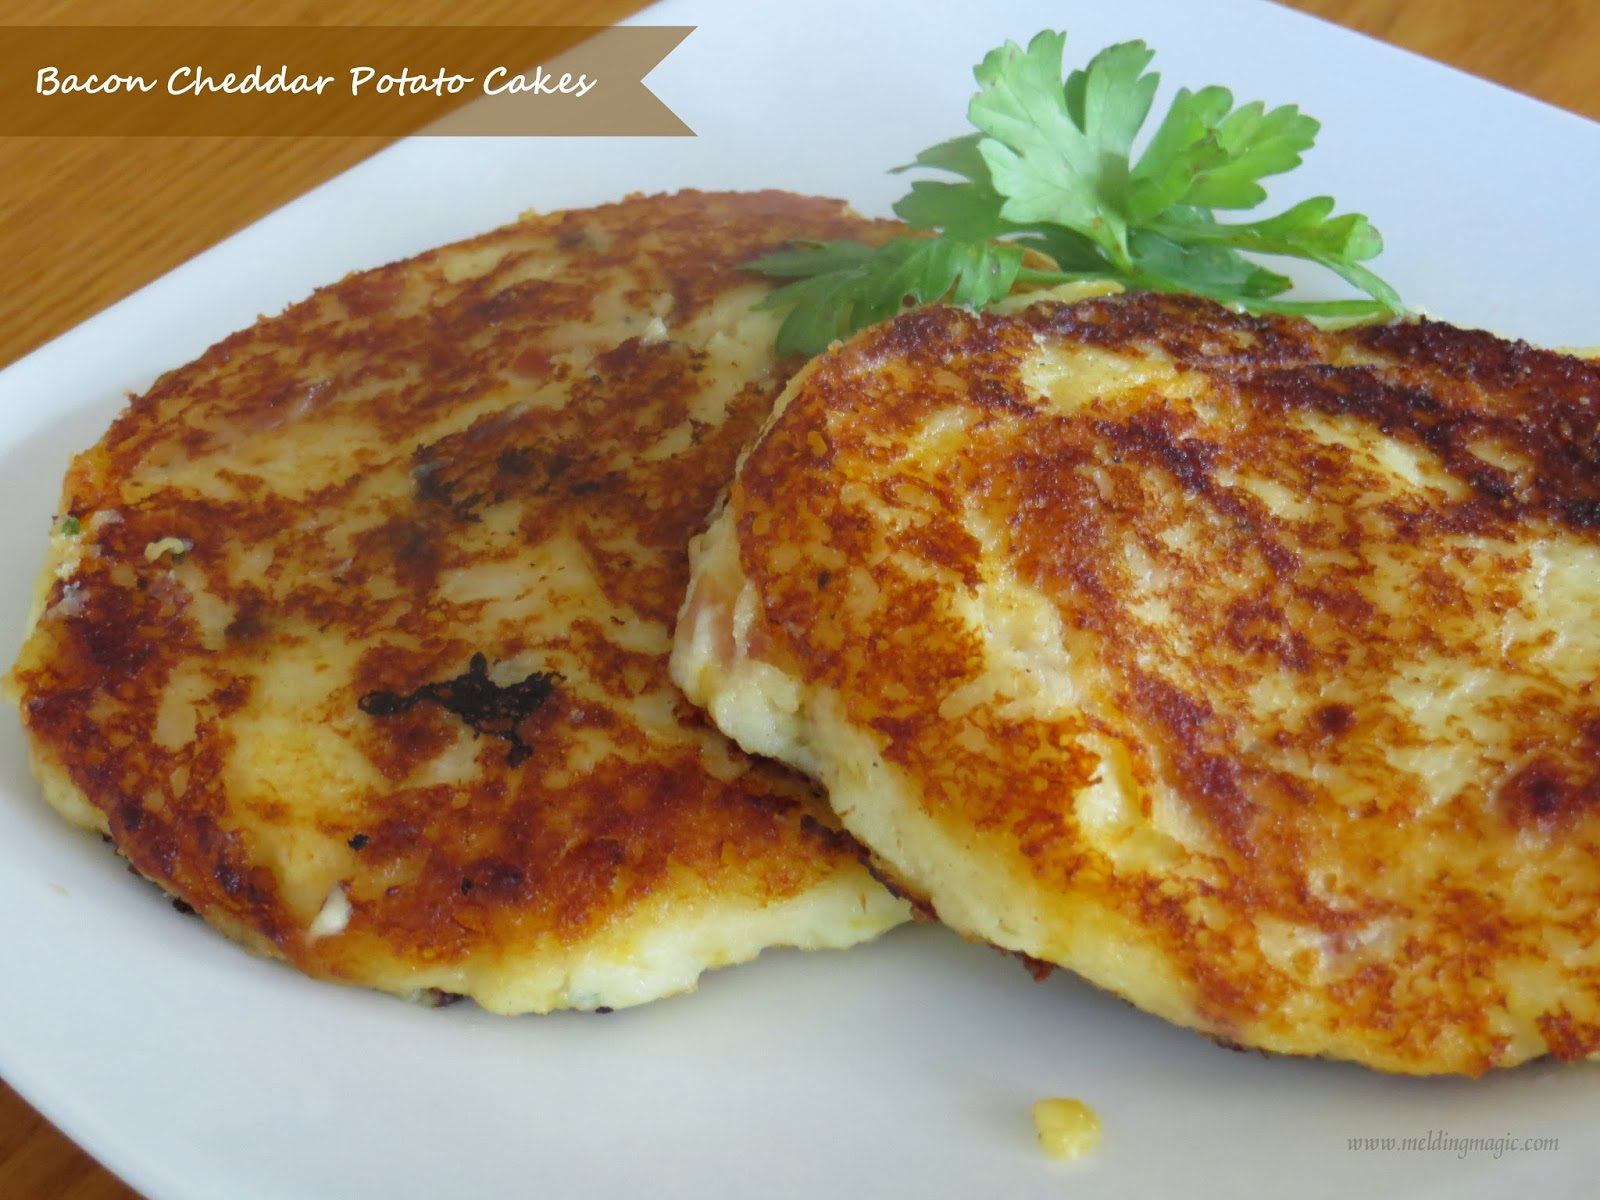 Potato Cake With Cheese And Bacon Recipes — Dishmaps